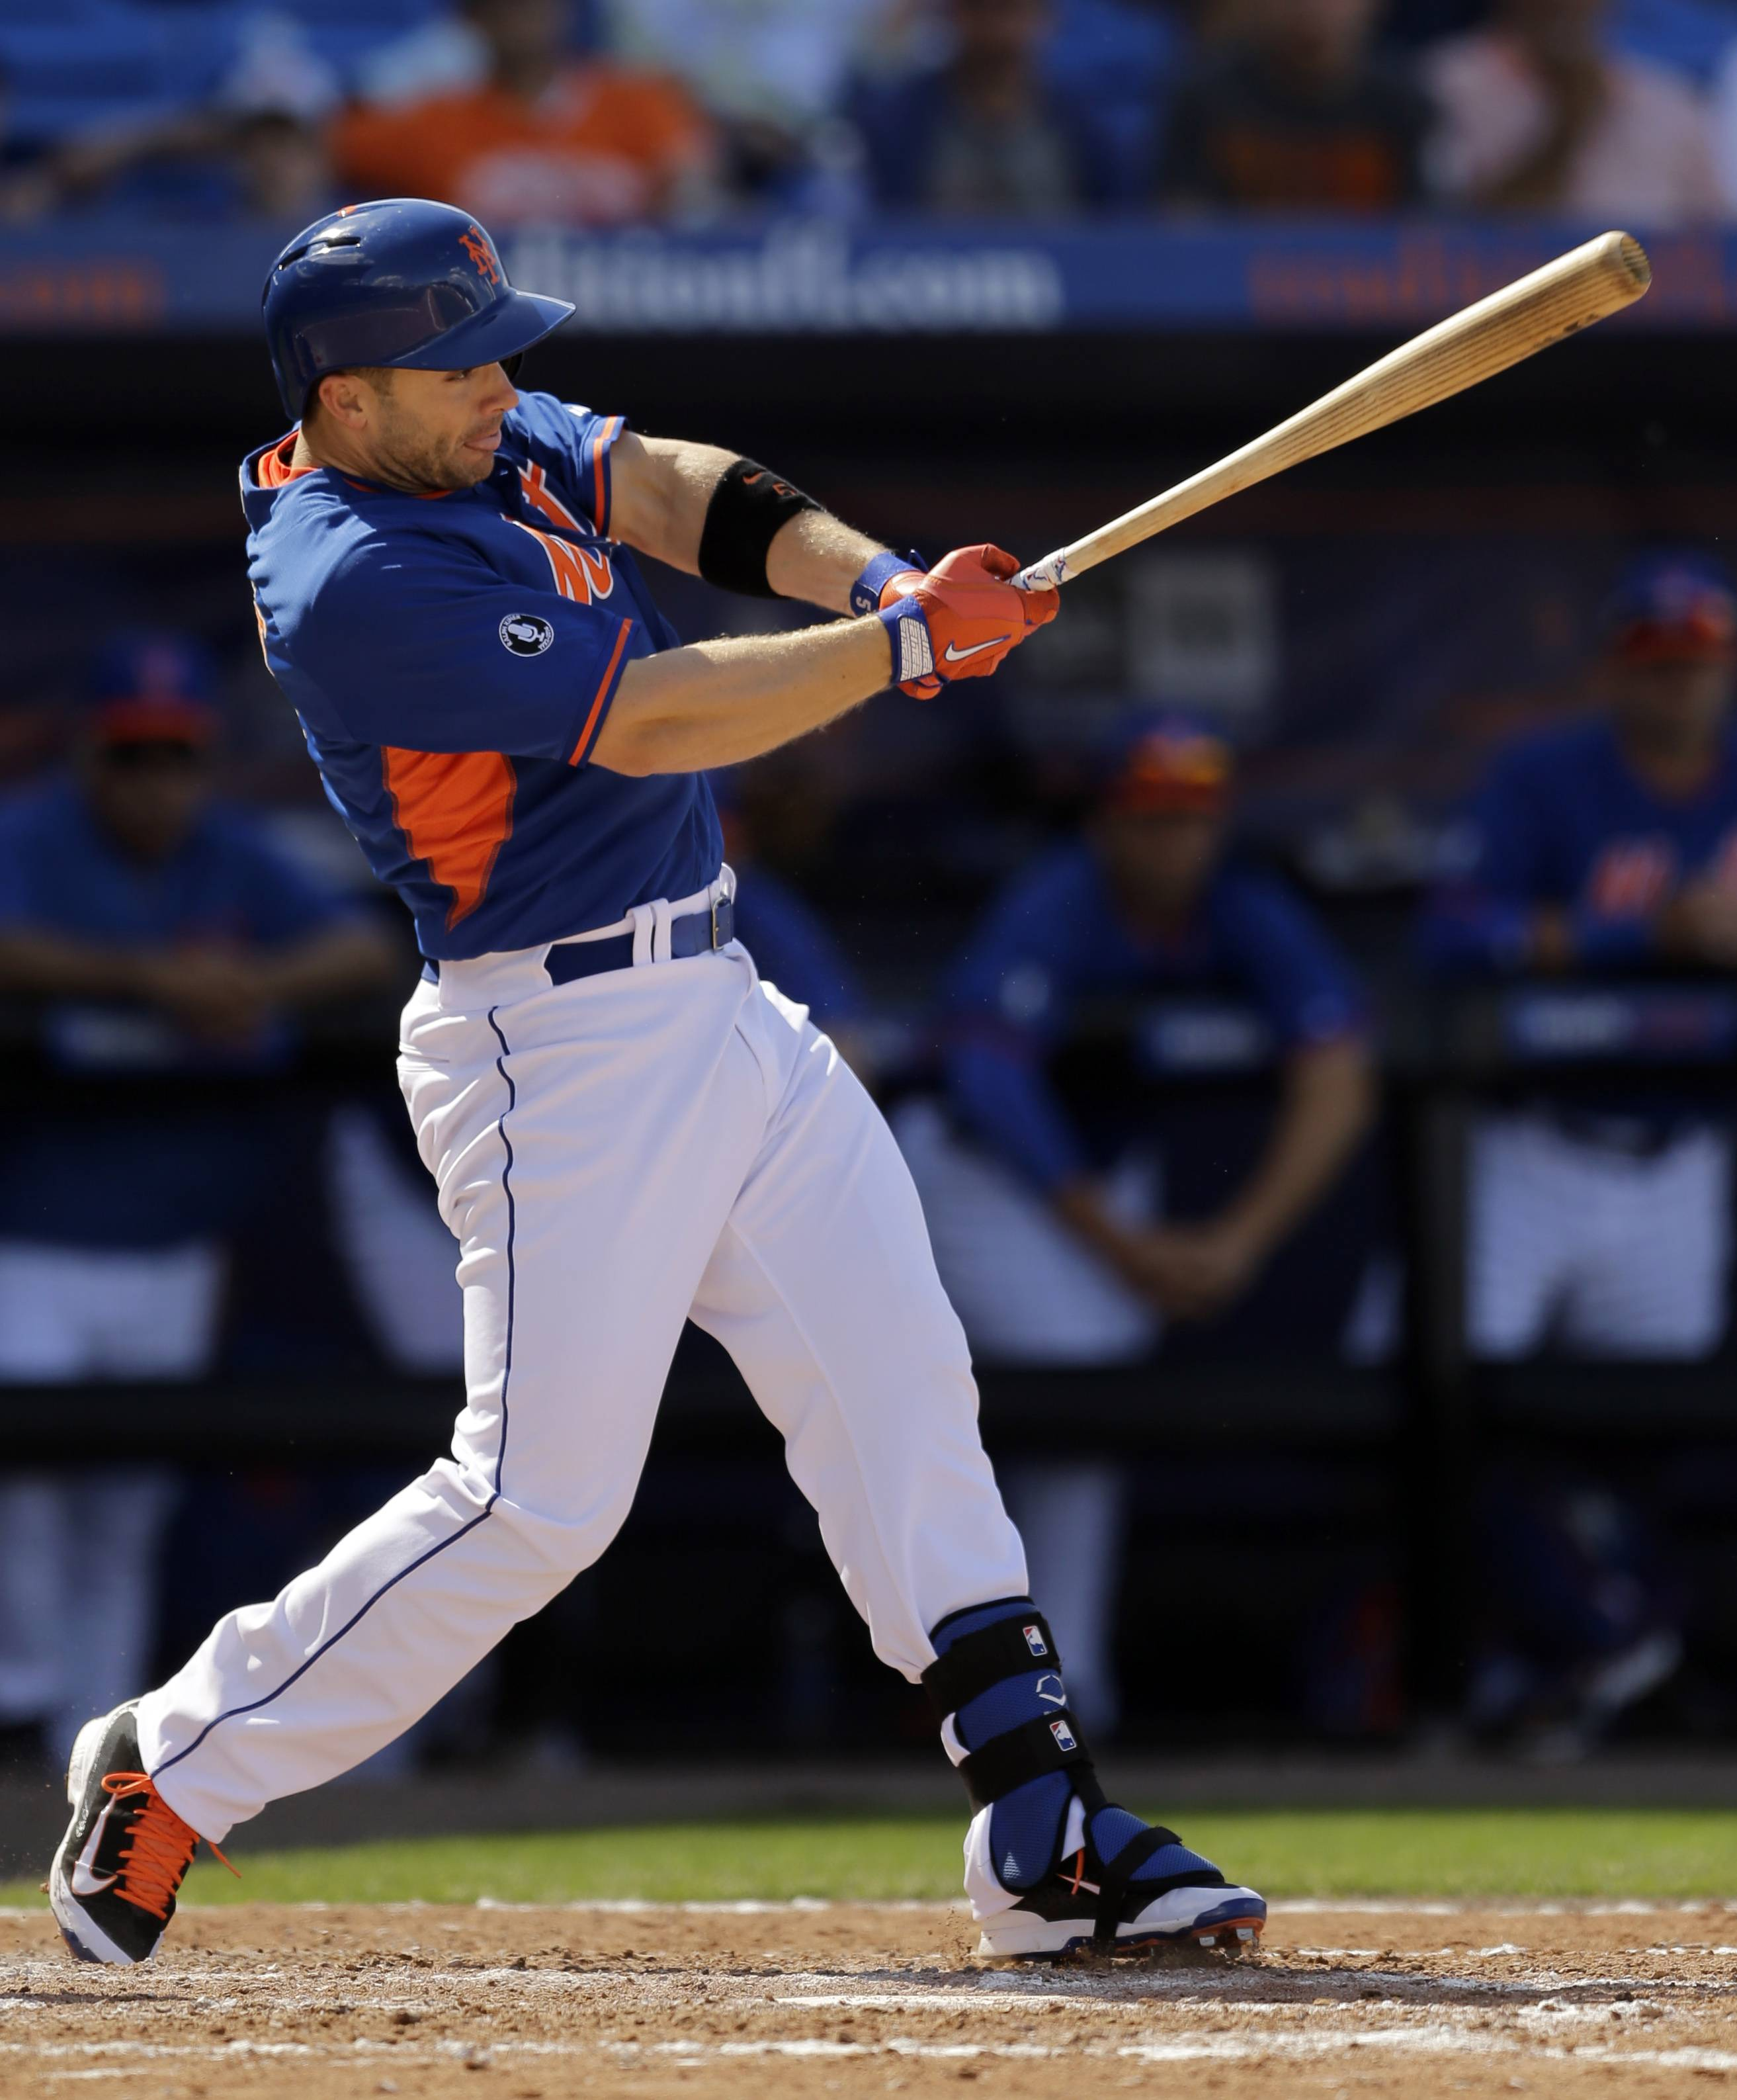 New York Mets' David Wright grounds into a double play during the fourth inning of an exhibition spring training baseball game against the St. Louis Cardinals, Friday, March 7, 2014, in Port St. Lucie, Fla.